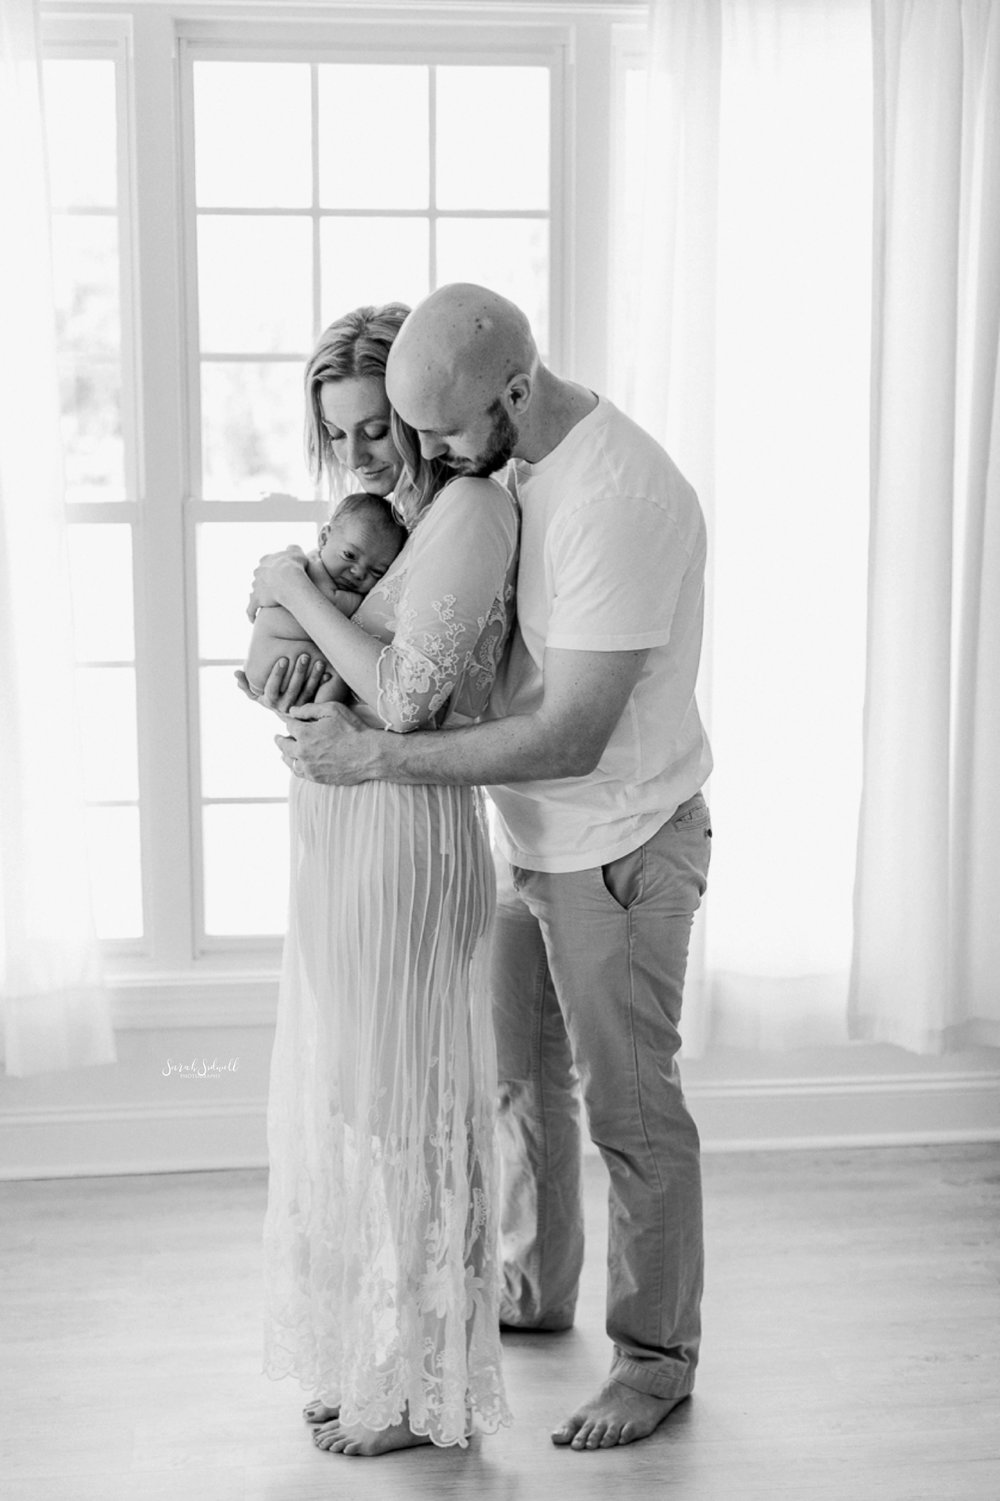 A man embraces his wife and newborn baby.